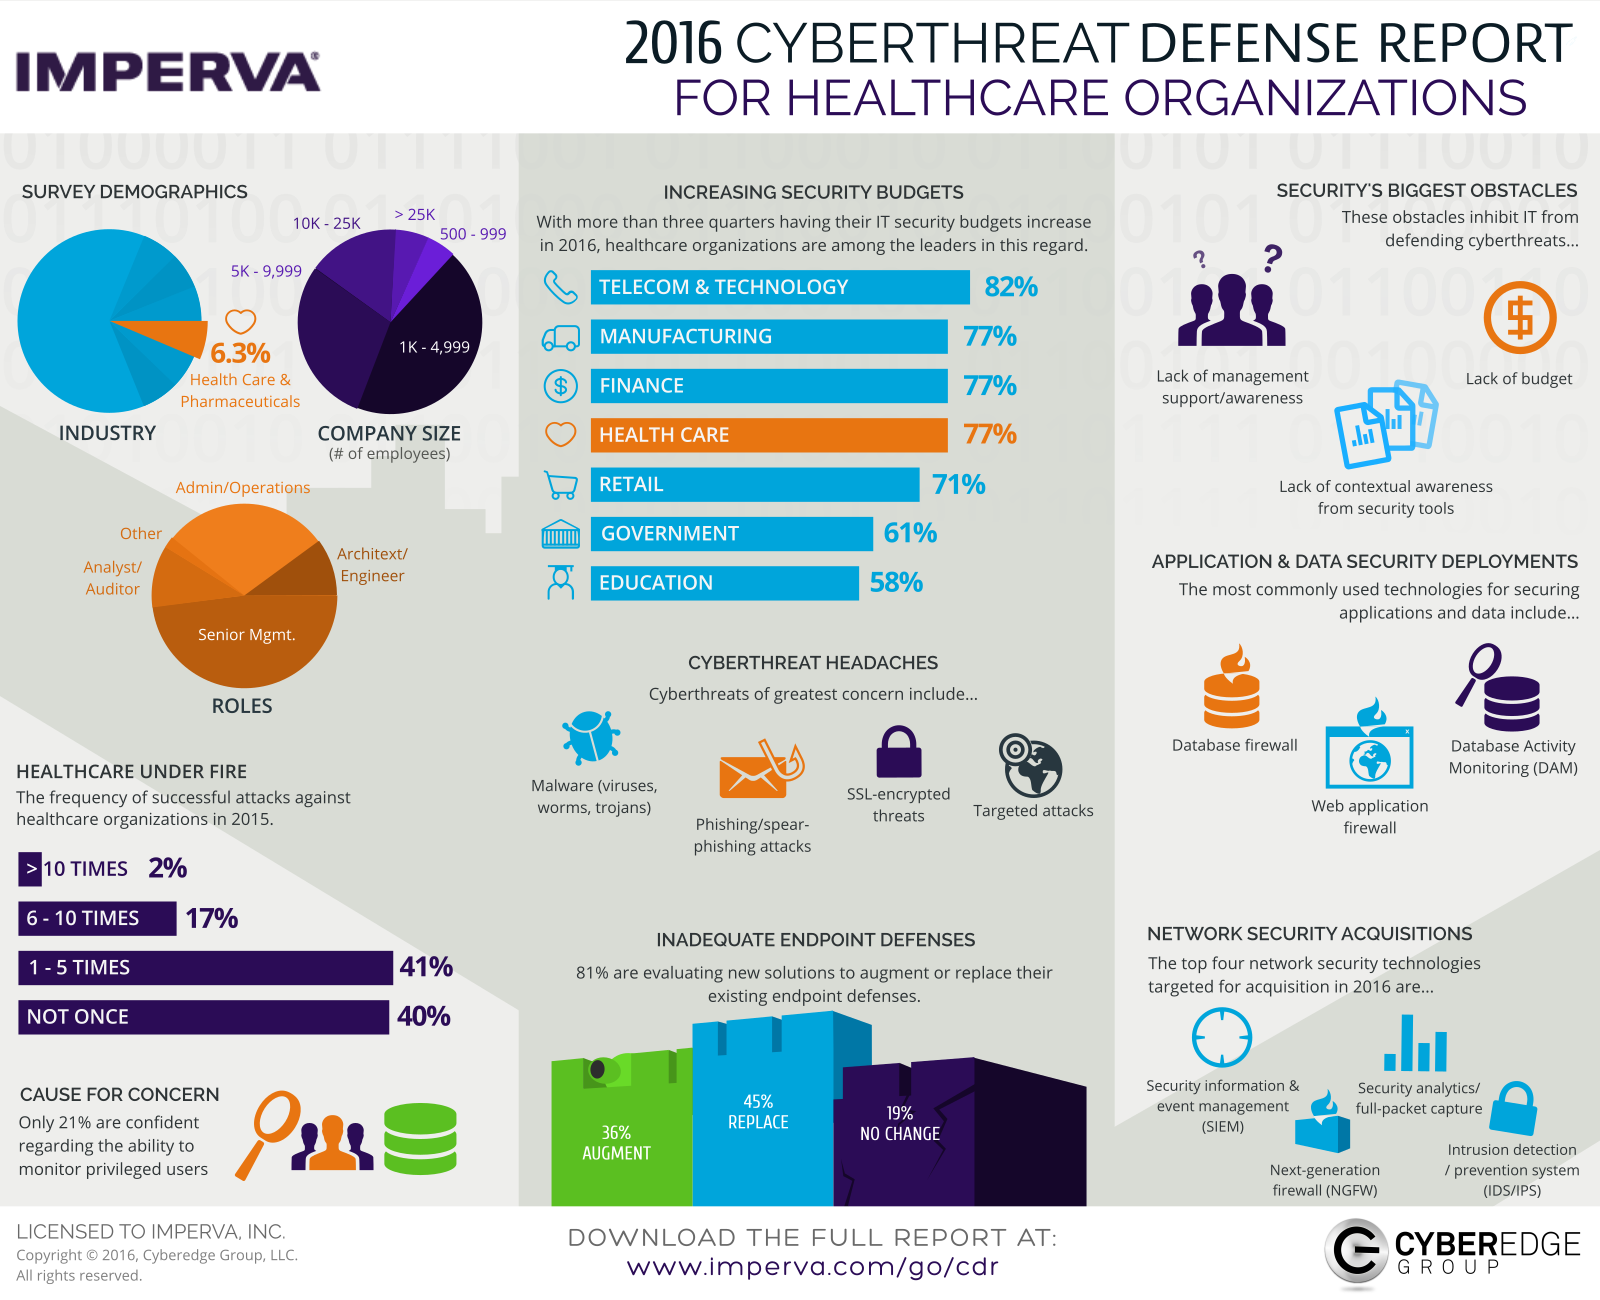 Presentation image for Imperva 2016 CDR Insights for Healthcare Organizations